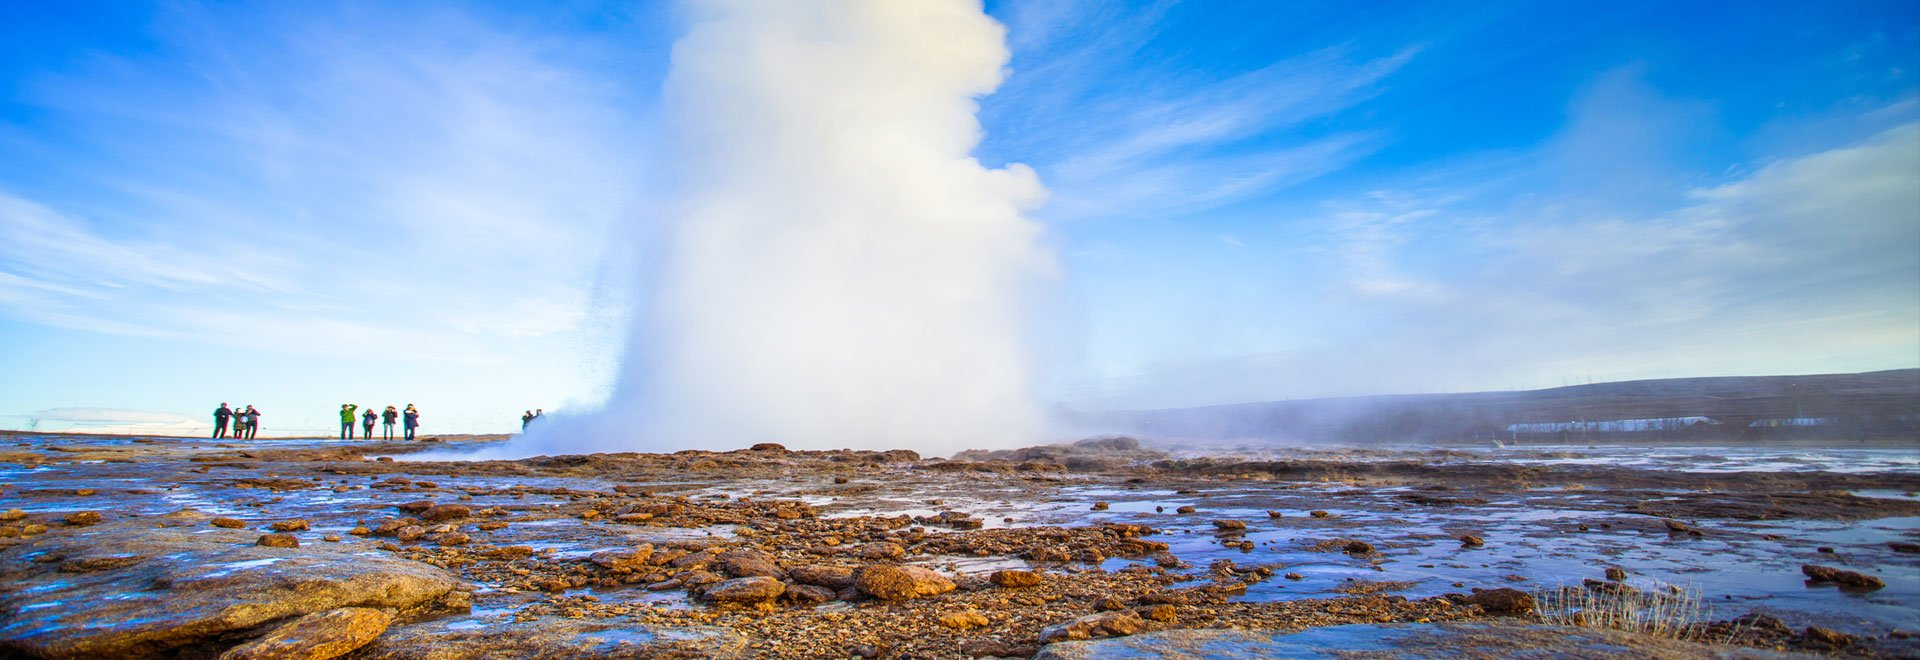 Europe Iceland Geysers Glaciers 2 MH